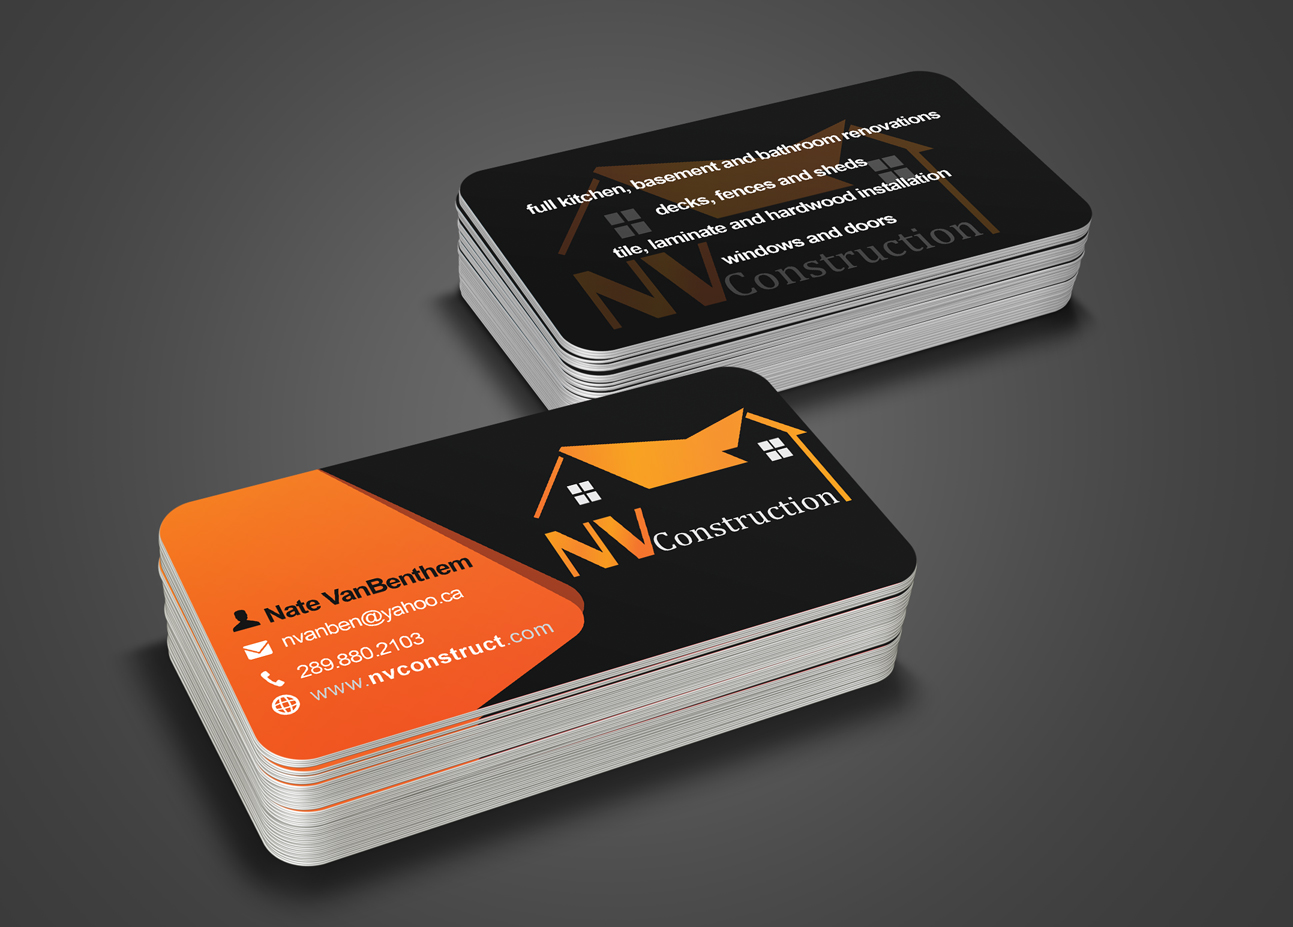 Business Card Logo Business Card Tips - Construction business card templates download free